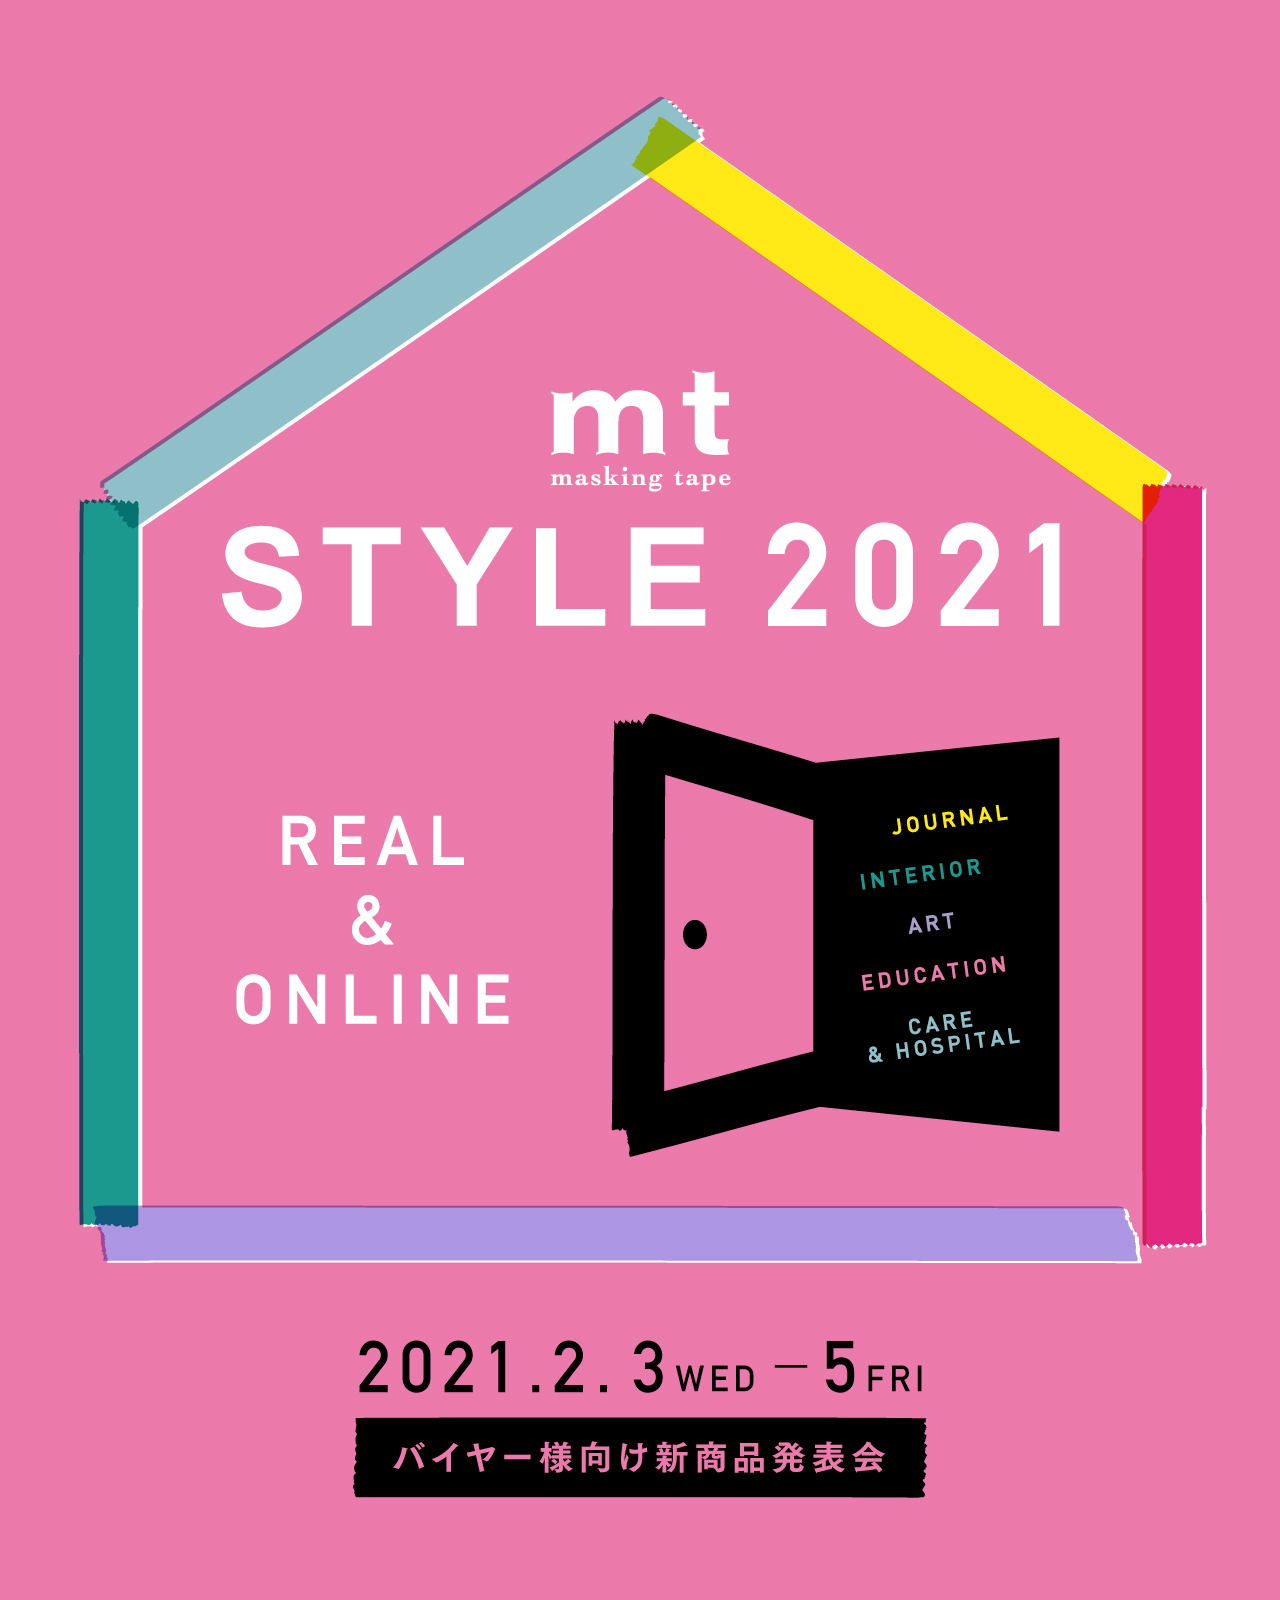 mt STYLE 2021 REAL&ONLINE 2021.2.3WED-3FRI